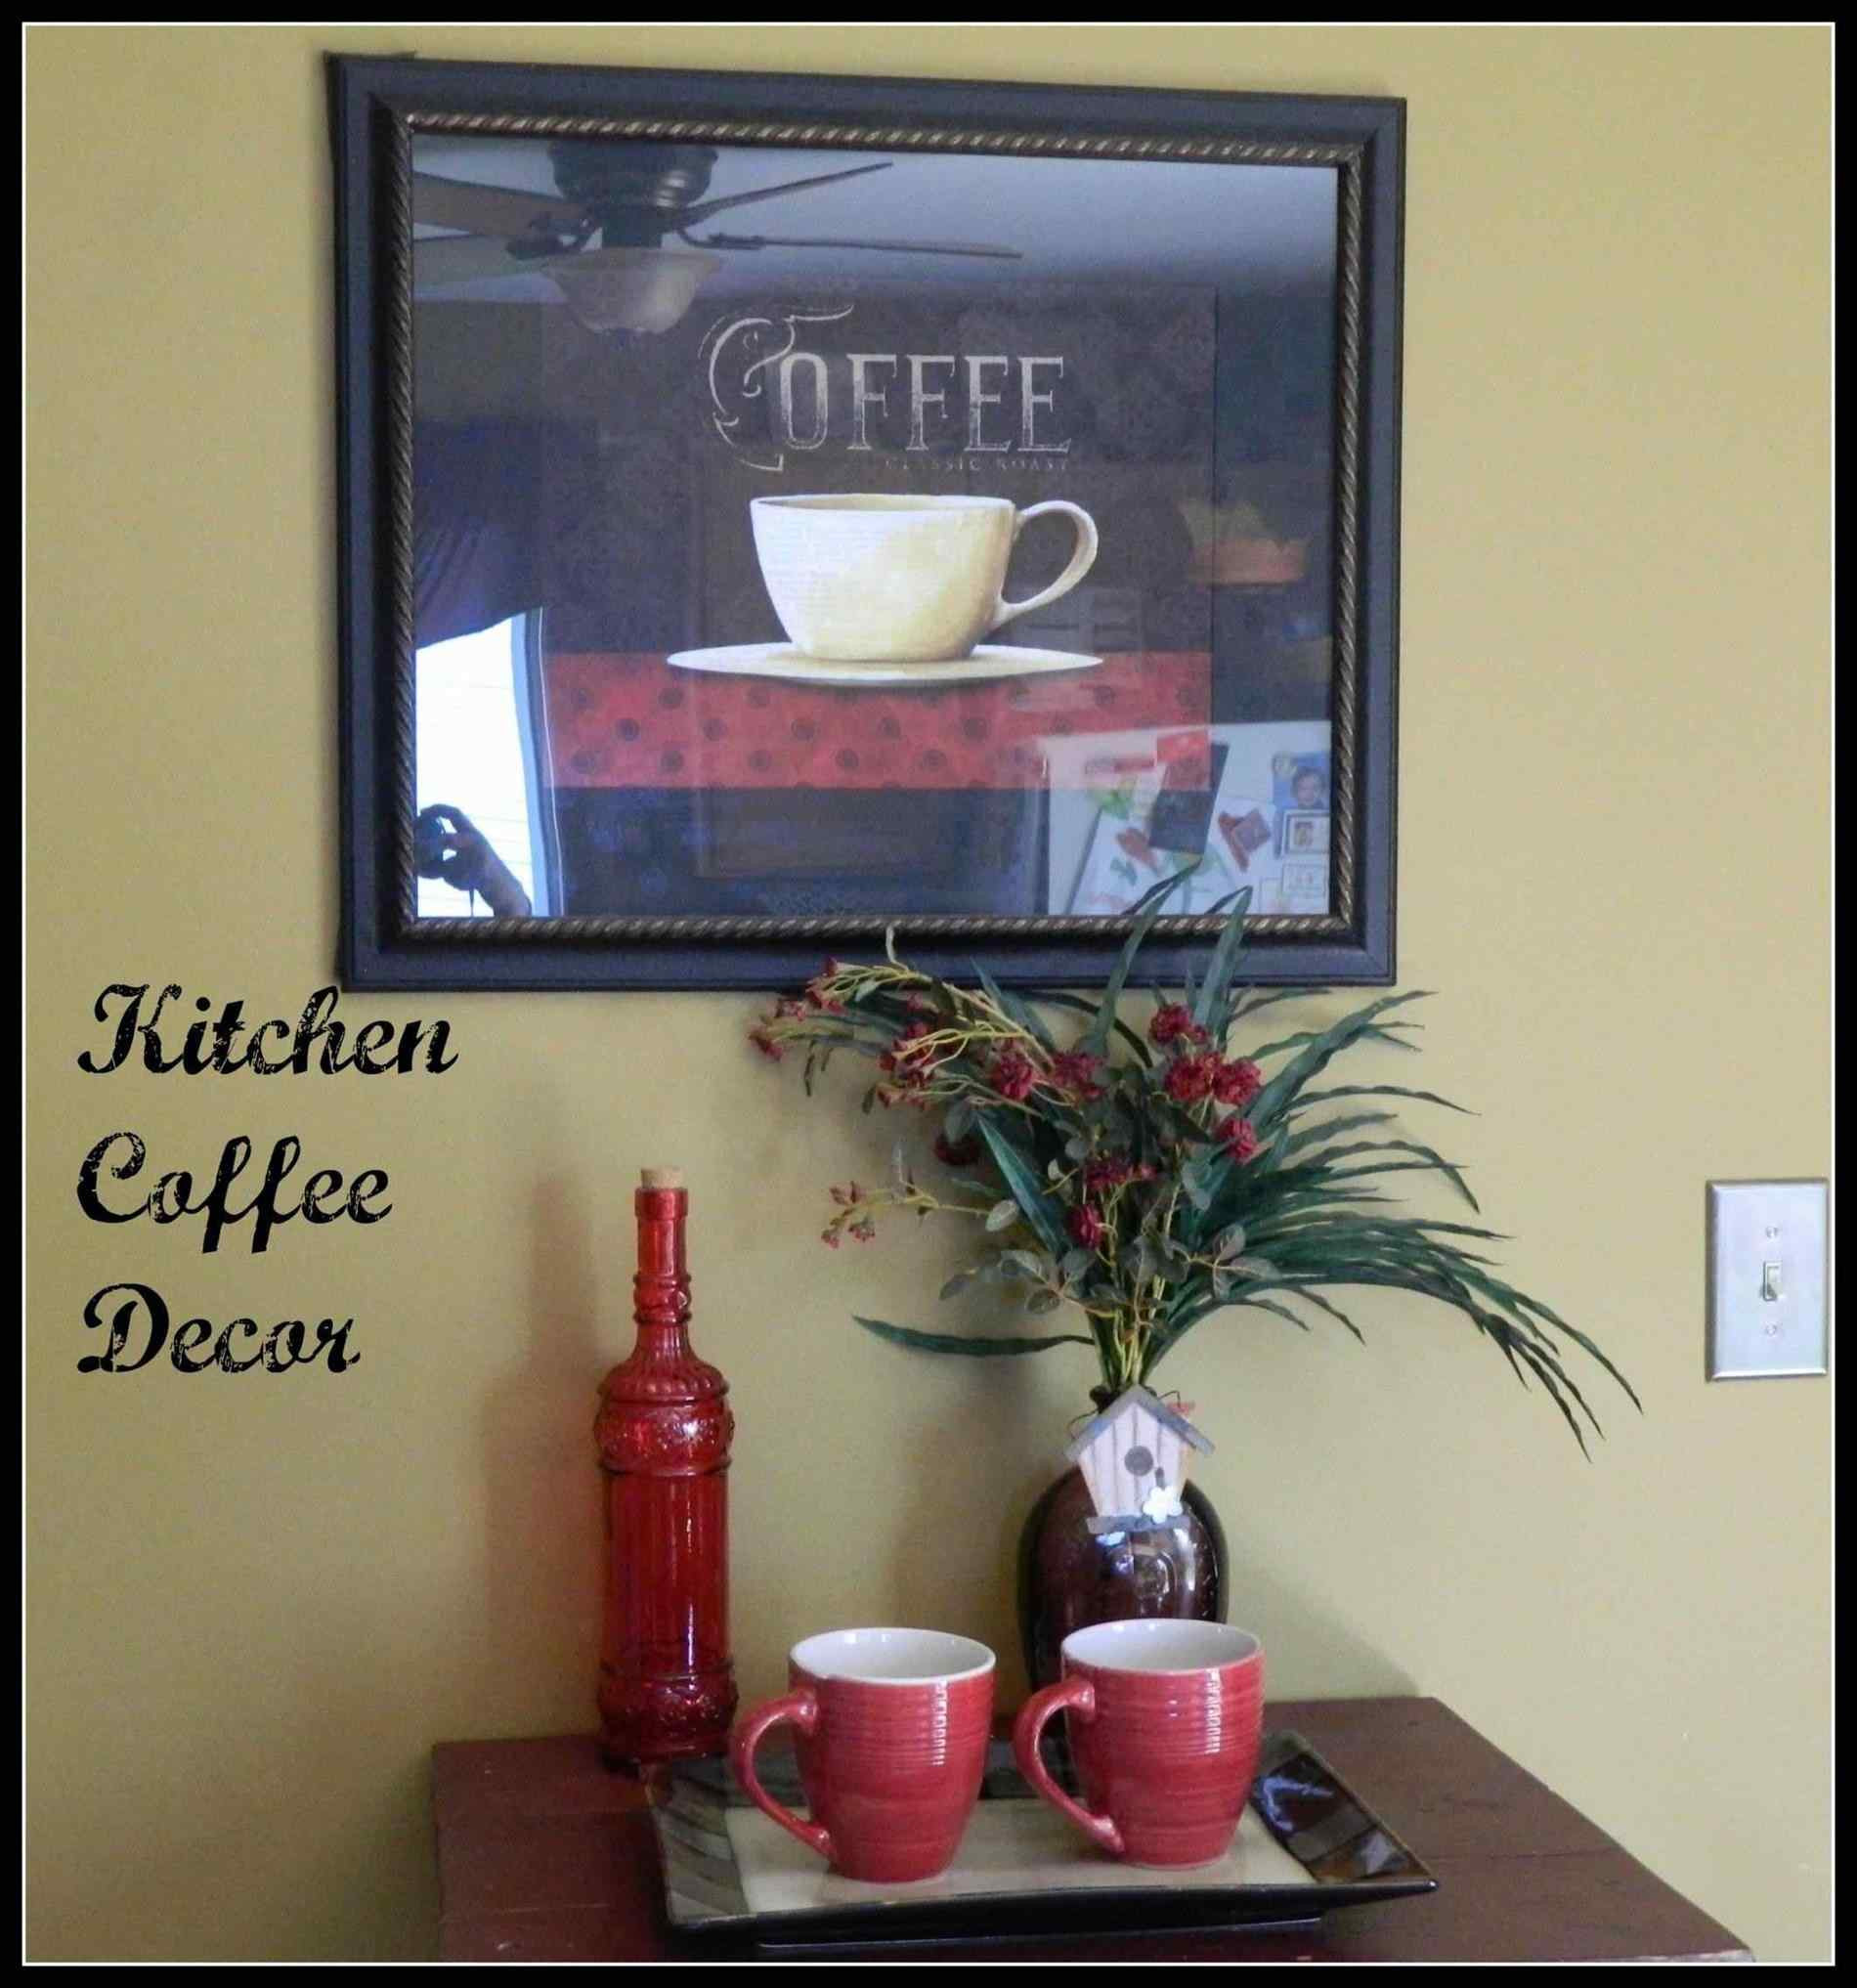 Best ideas about Coffee Kitchen Decor Walmart . Save or Pin Coffee Cup Decor For Kitchen Now.